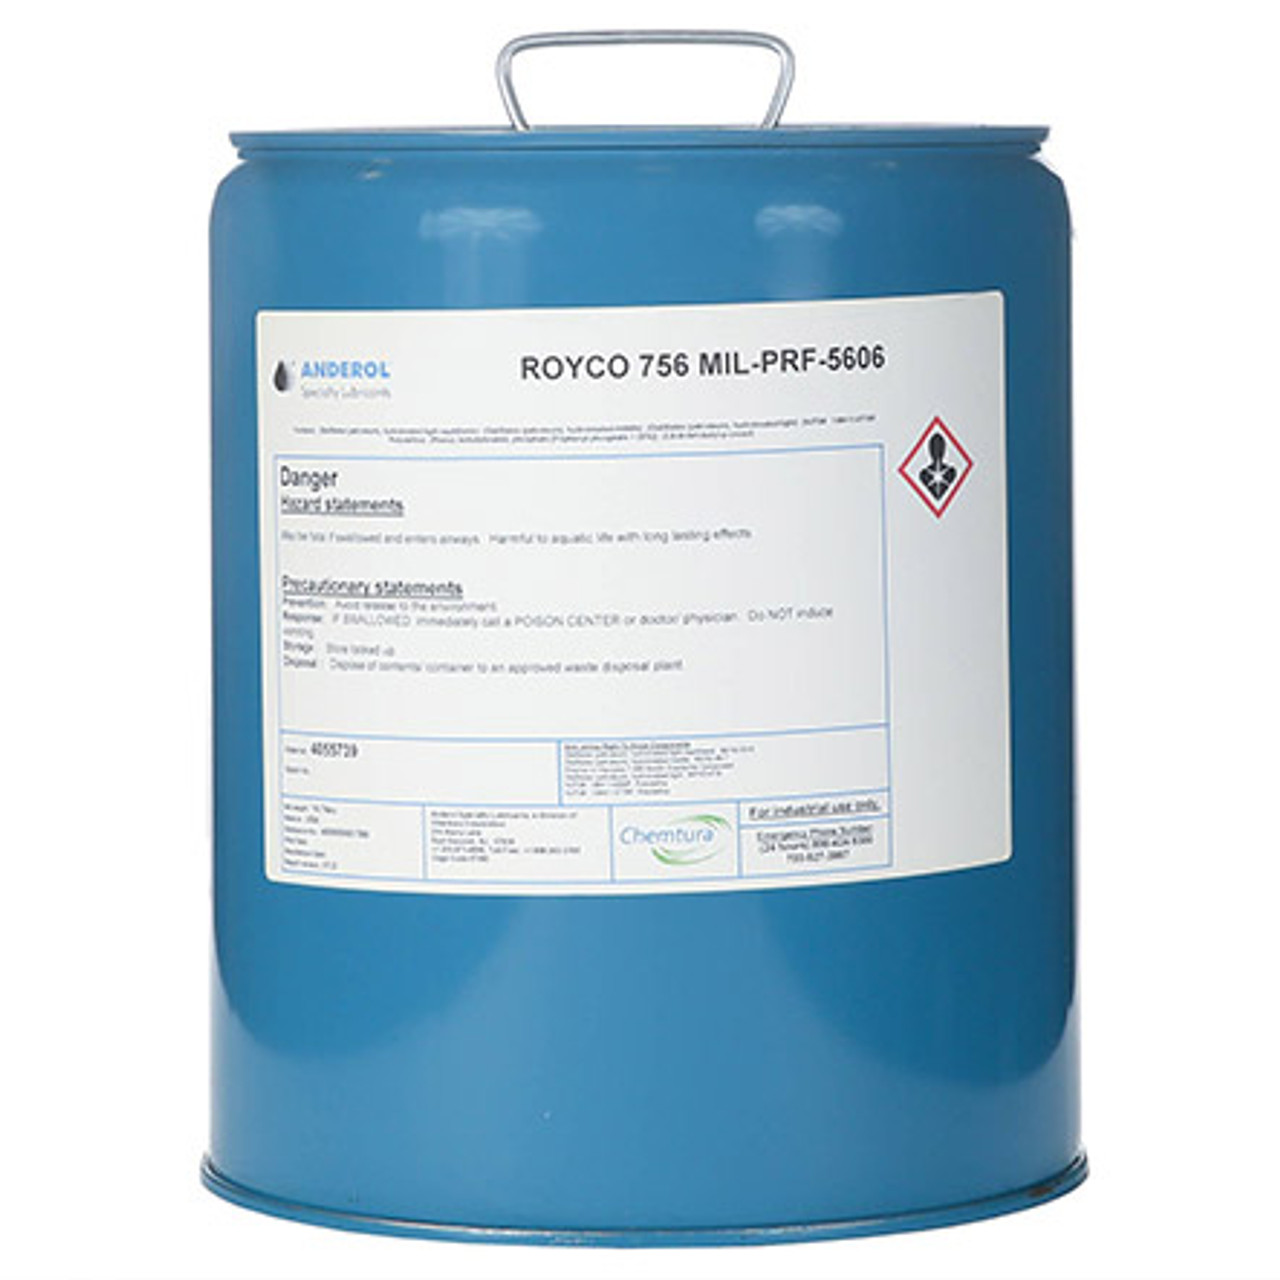 """ROYCO® 756 Red MIL-PRF-5606H Amend. 3 Spec Mineral Oil Based Aircraft Hydraulic Fluid - 5 Gallon Steel Pail - Part#: 4055739by ROYCO® Royco 756 is a red-dyed, mineral oil based hydraulic fluid developed for the severe duty demands of aerospace and industrial service. Royco 756 contains additives that provide excellent low temperature fluidity as well as exceptional anti-wear, oxidation/corrosion inhibition and shear stability. Additionally, metal deactivators and foam inhibitors are provided in this high viscosity index fluid to enhance performance in many general purpose hydraulic applications.     Features and Benefits:    Wide operating temperature range Low temperature fluidity Exceptional anti-wear performance """"Super clean"""" fluid to improve equipment life Excellent oxidation and corrosion inhibition    Applications:  Uses requiring all-weather performance Use in systems where a """"super clean"""" fluid can contribute to improved component life and reliability Use in unpressurized systems operating at temperature ranges from -54 to 90°C (-65 to 195°F) Use in pressurized systems from -54 to 135°C (-65 tp 275°F) at pressures up to 3000 psi Use in systems not requiring the a """"super clean"""" ID Use in systems where the convenience of a re-sealable container can provide cost savings  Approvals and Specifications:  Meets all the requirements and is qualified under MIL-SPEC: MIL-PRF-5606H(3) that supersedes Mil-H-5606G, Mil-O 5606, AN-O-336, AN-VV-O-336 and AAF-3580 Meets the technical requirements of Mil-H-5606A"""